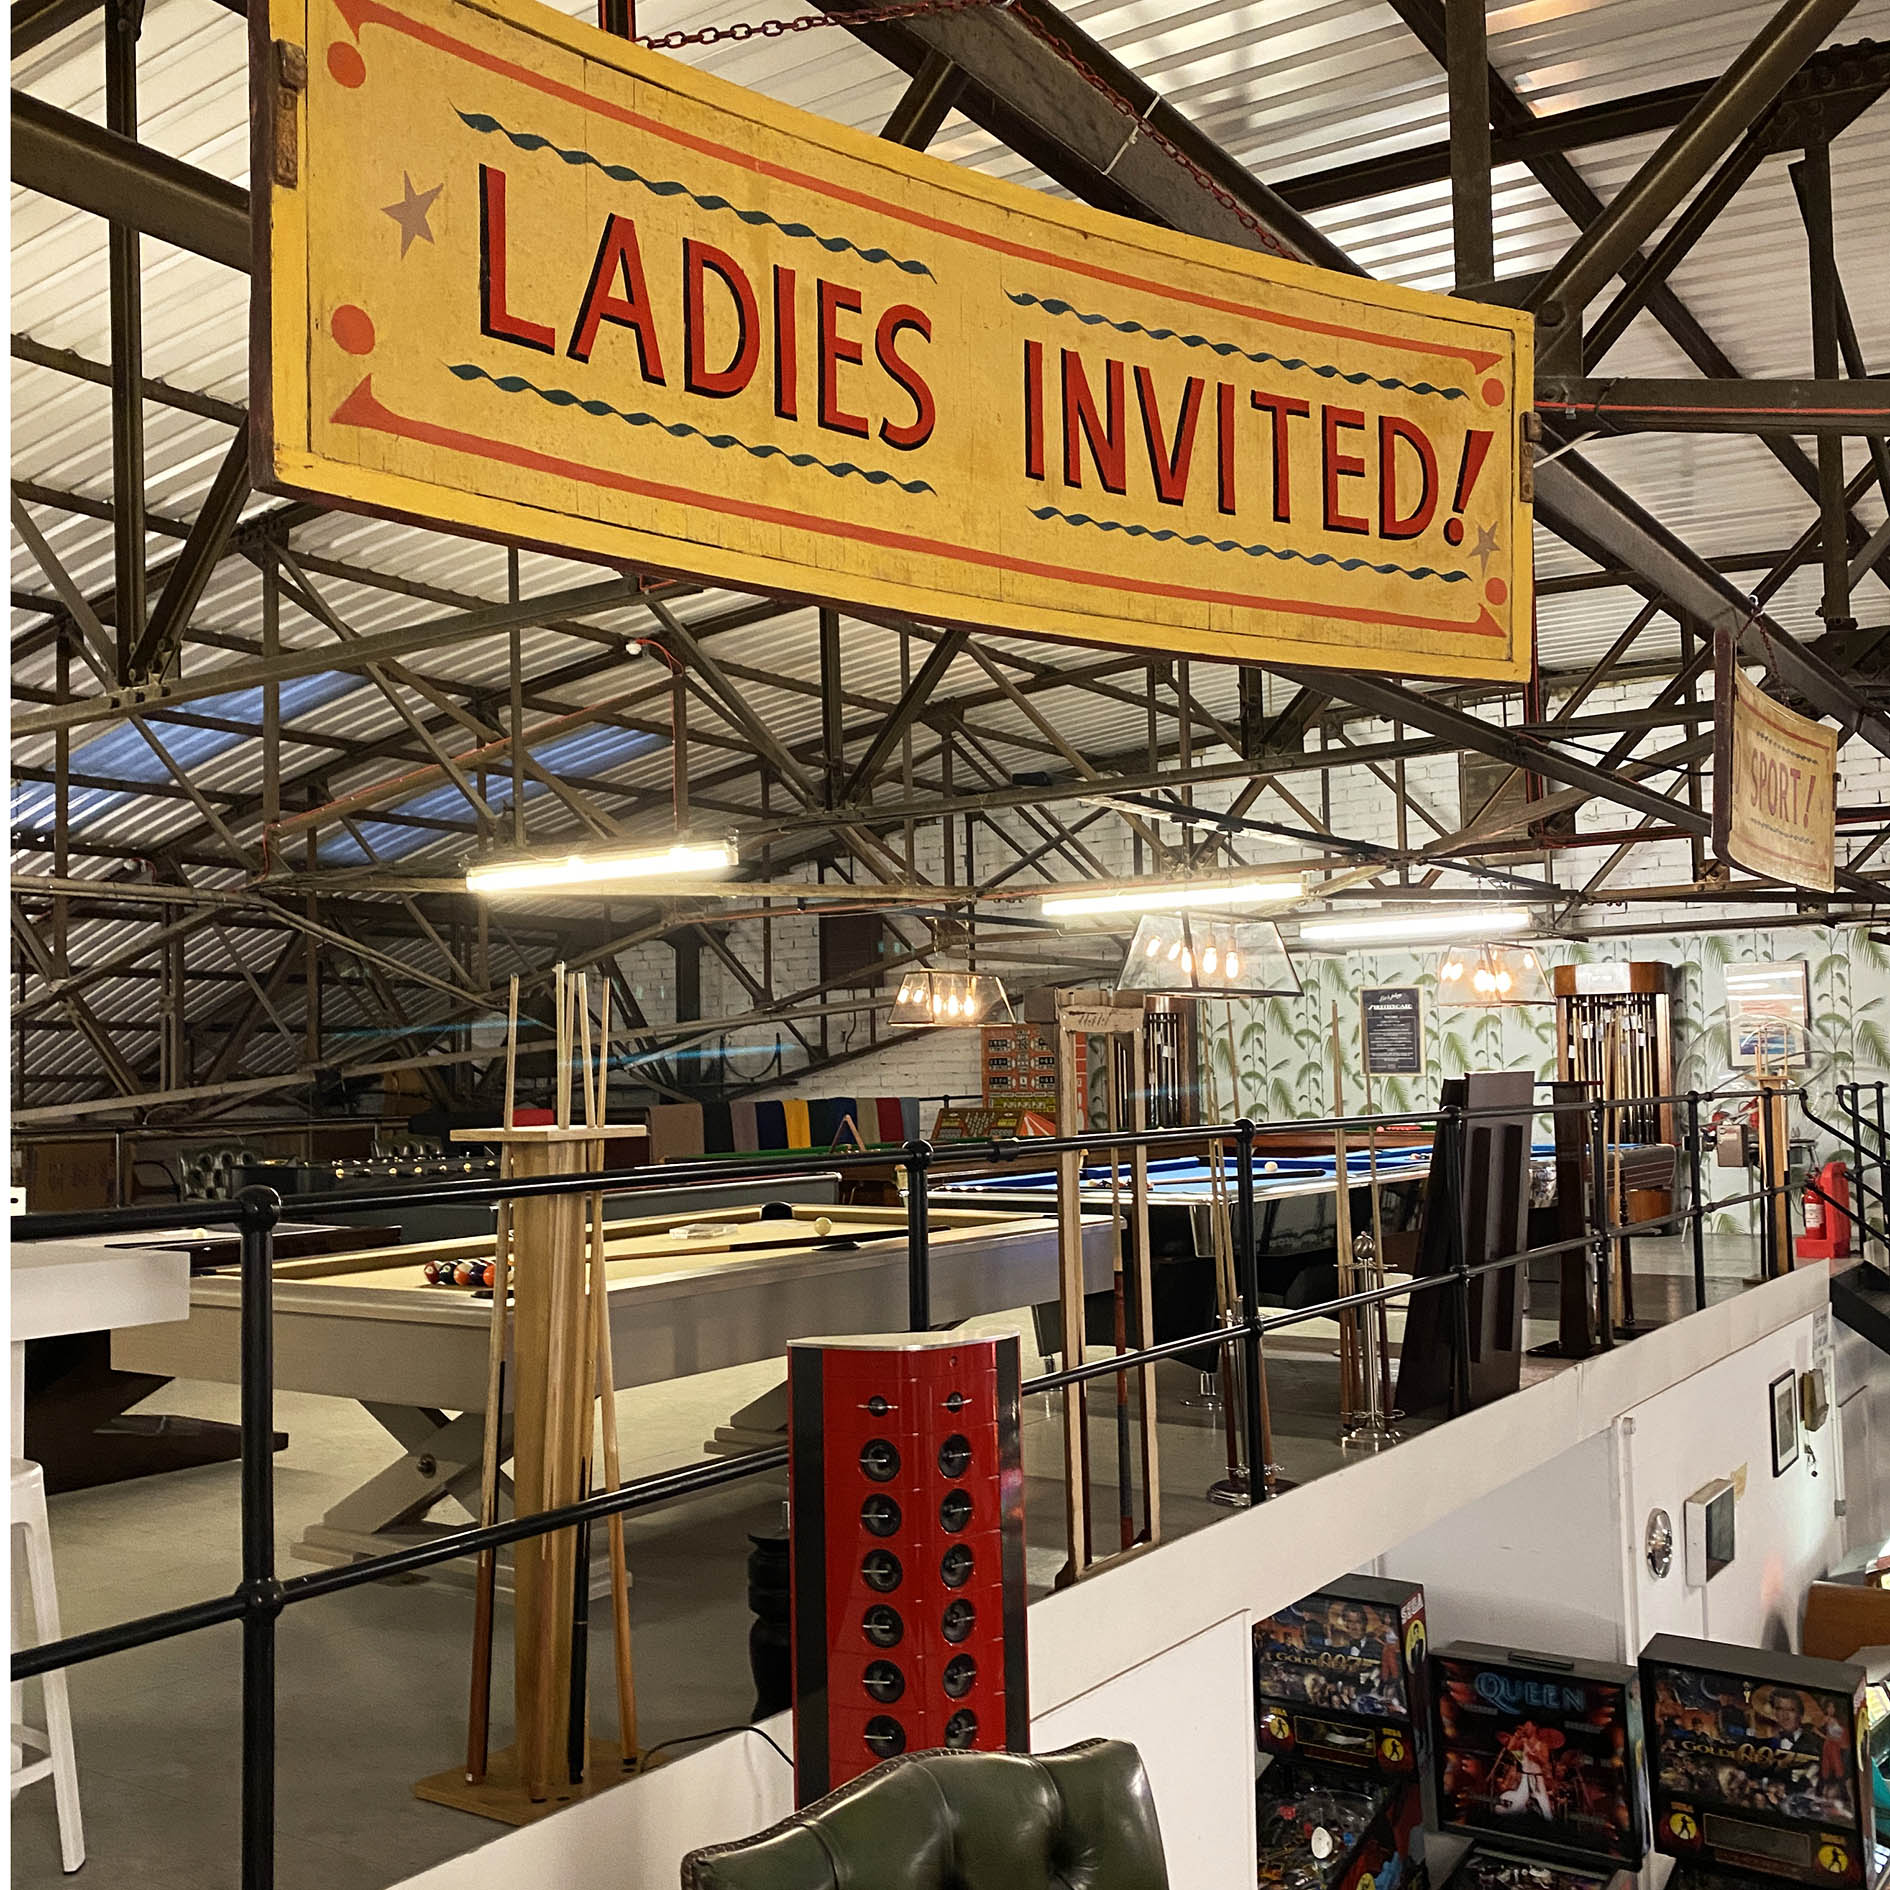 Ladies Invited! 1930s Vintage Fairground Sign